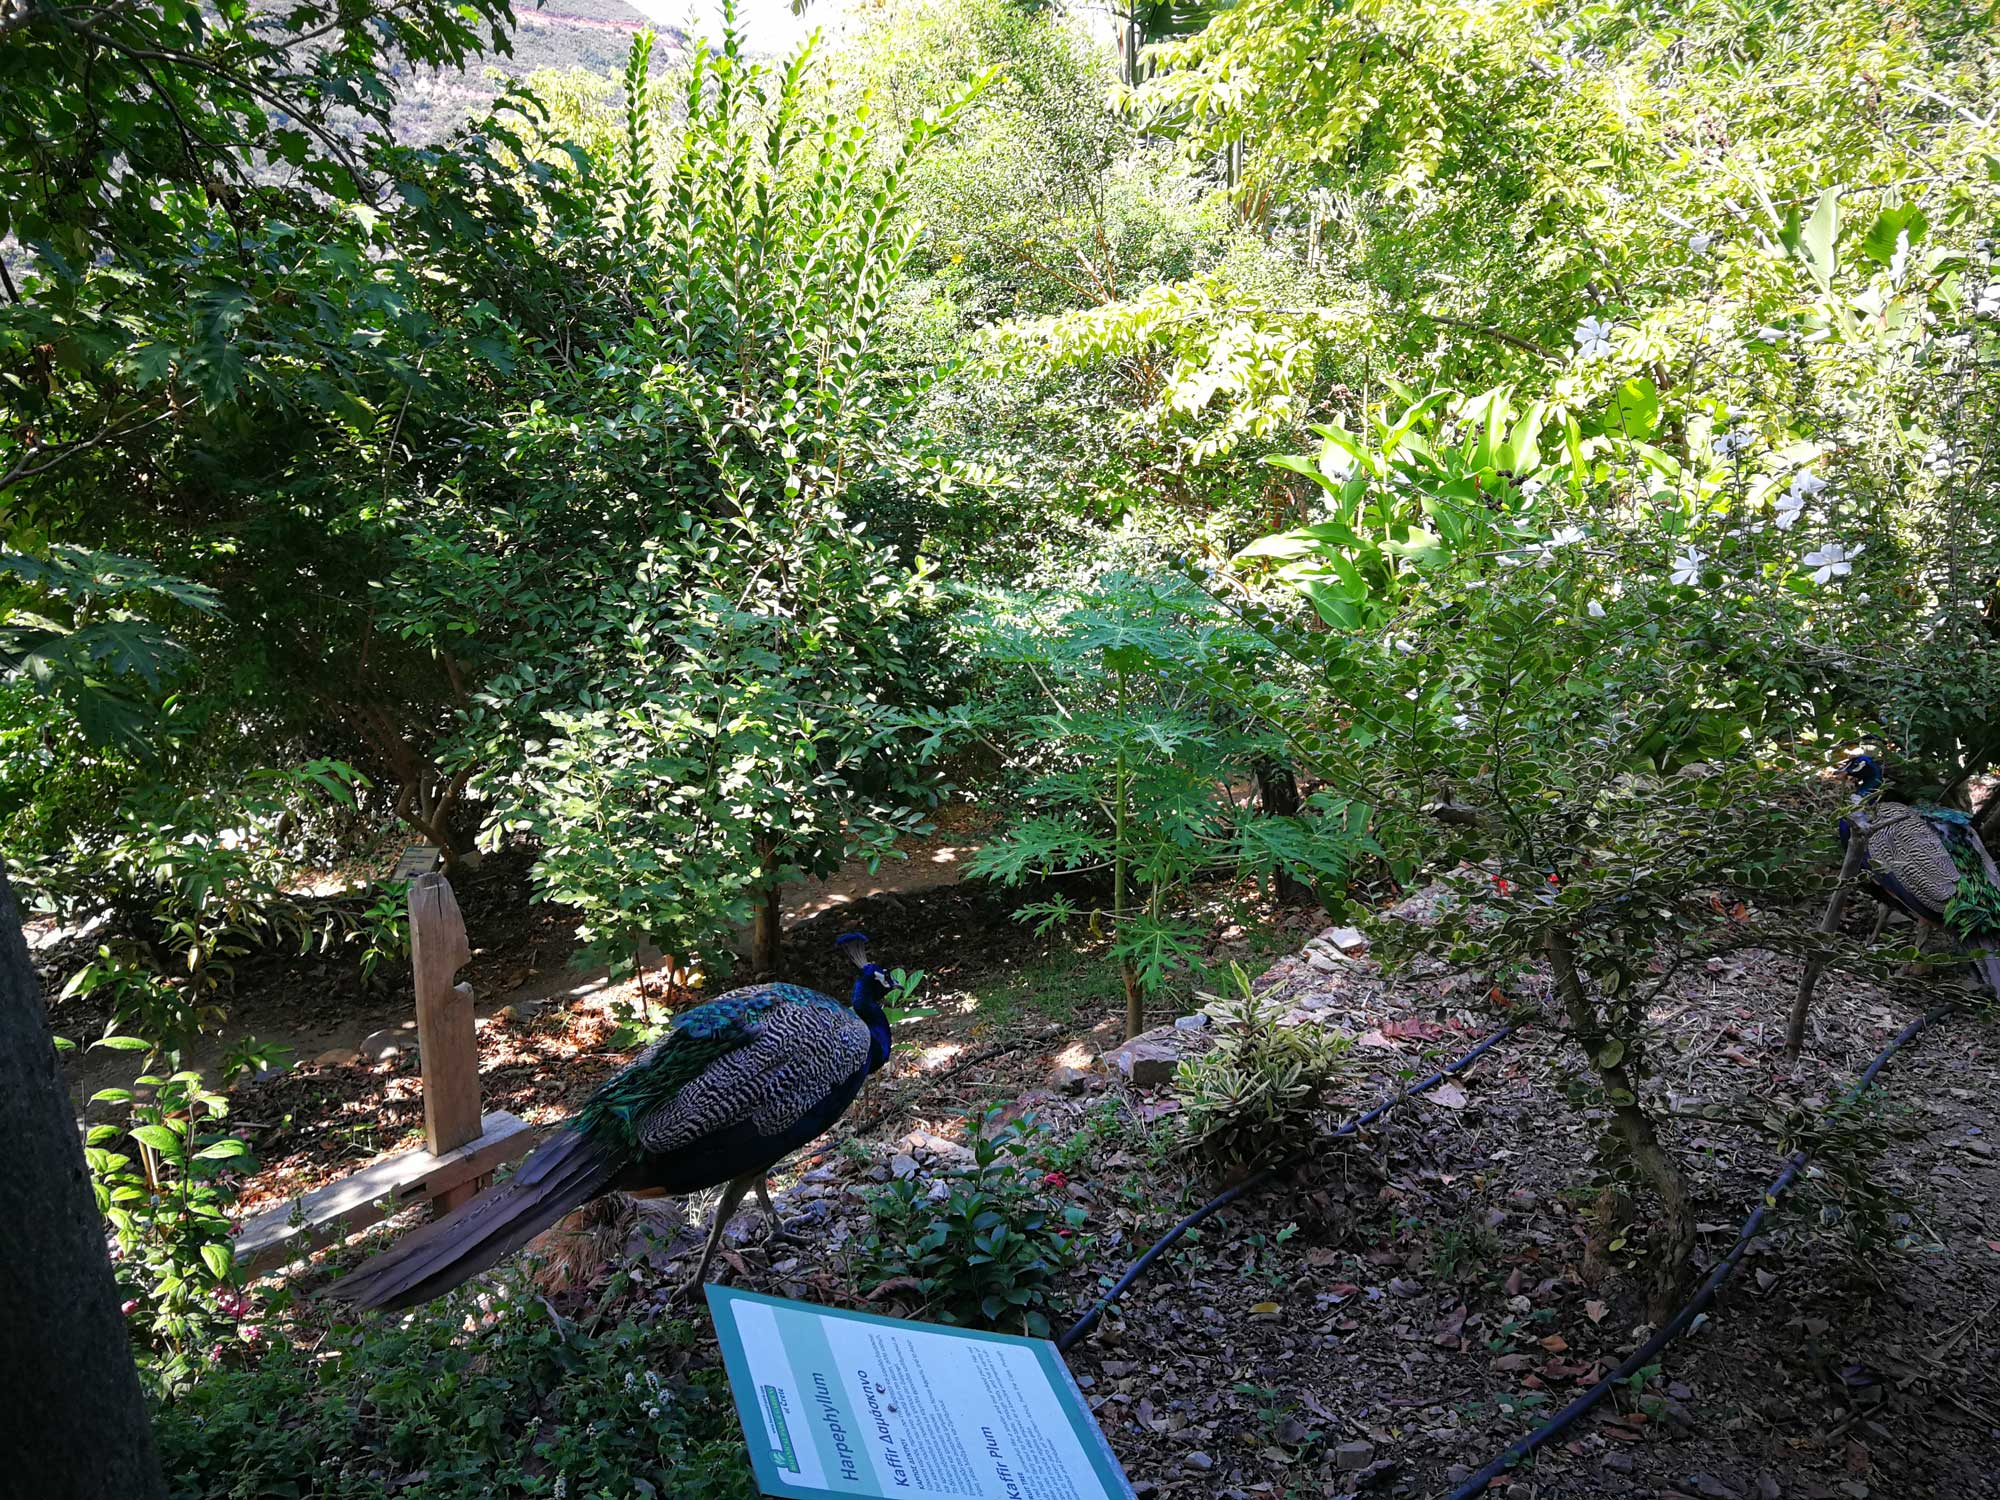 Peafowl in the Botanical Park & Gardens of Crete